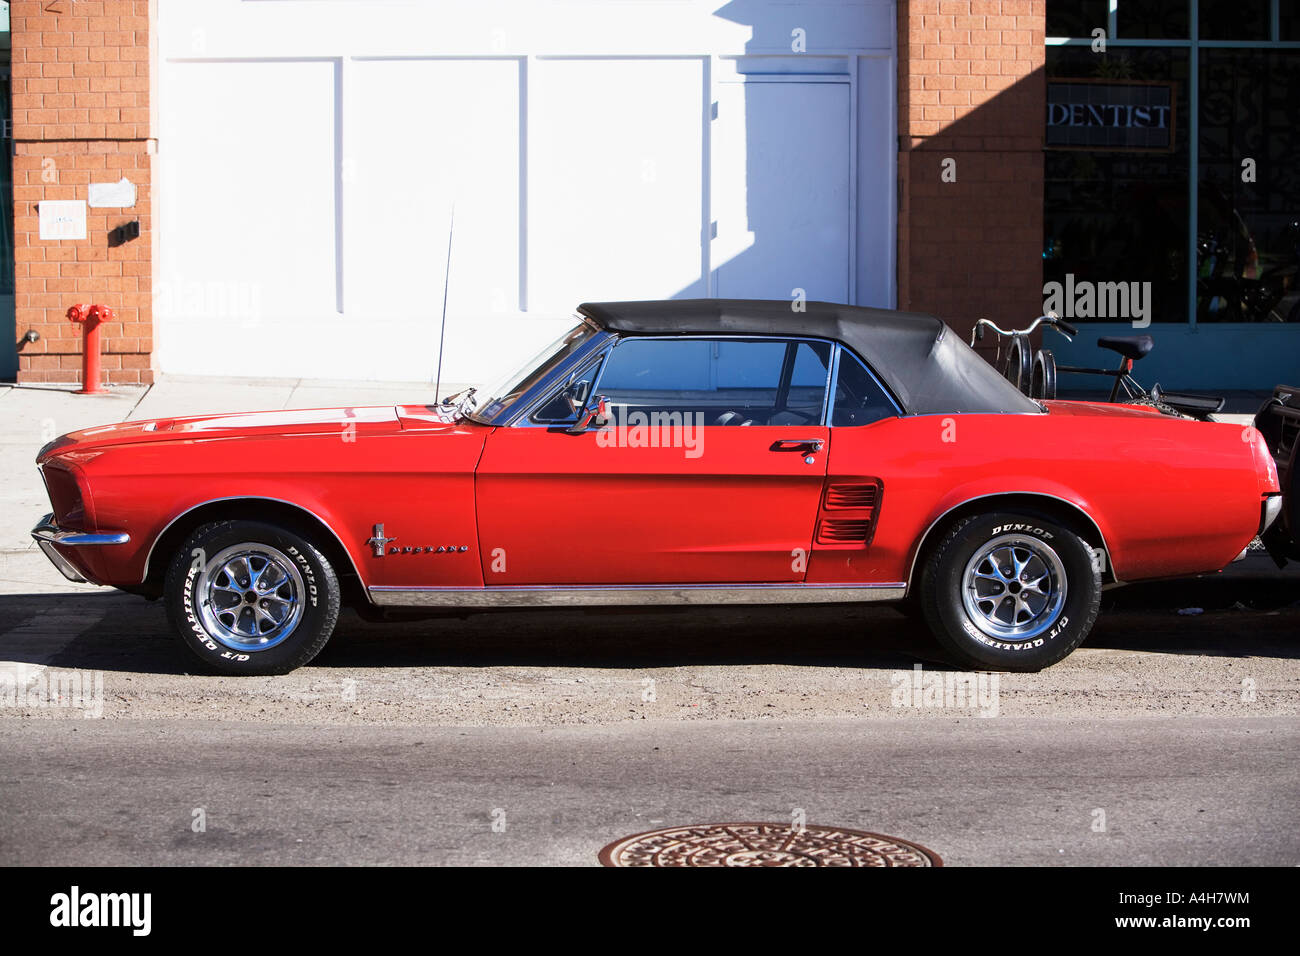 ford mustang 1960s stock photos ford mustang 1960s stock images alamy. Black Bedroom Furniture Sets. Home Design Ideas